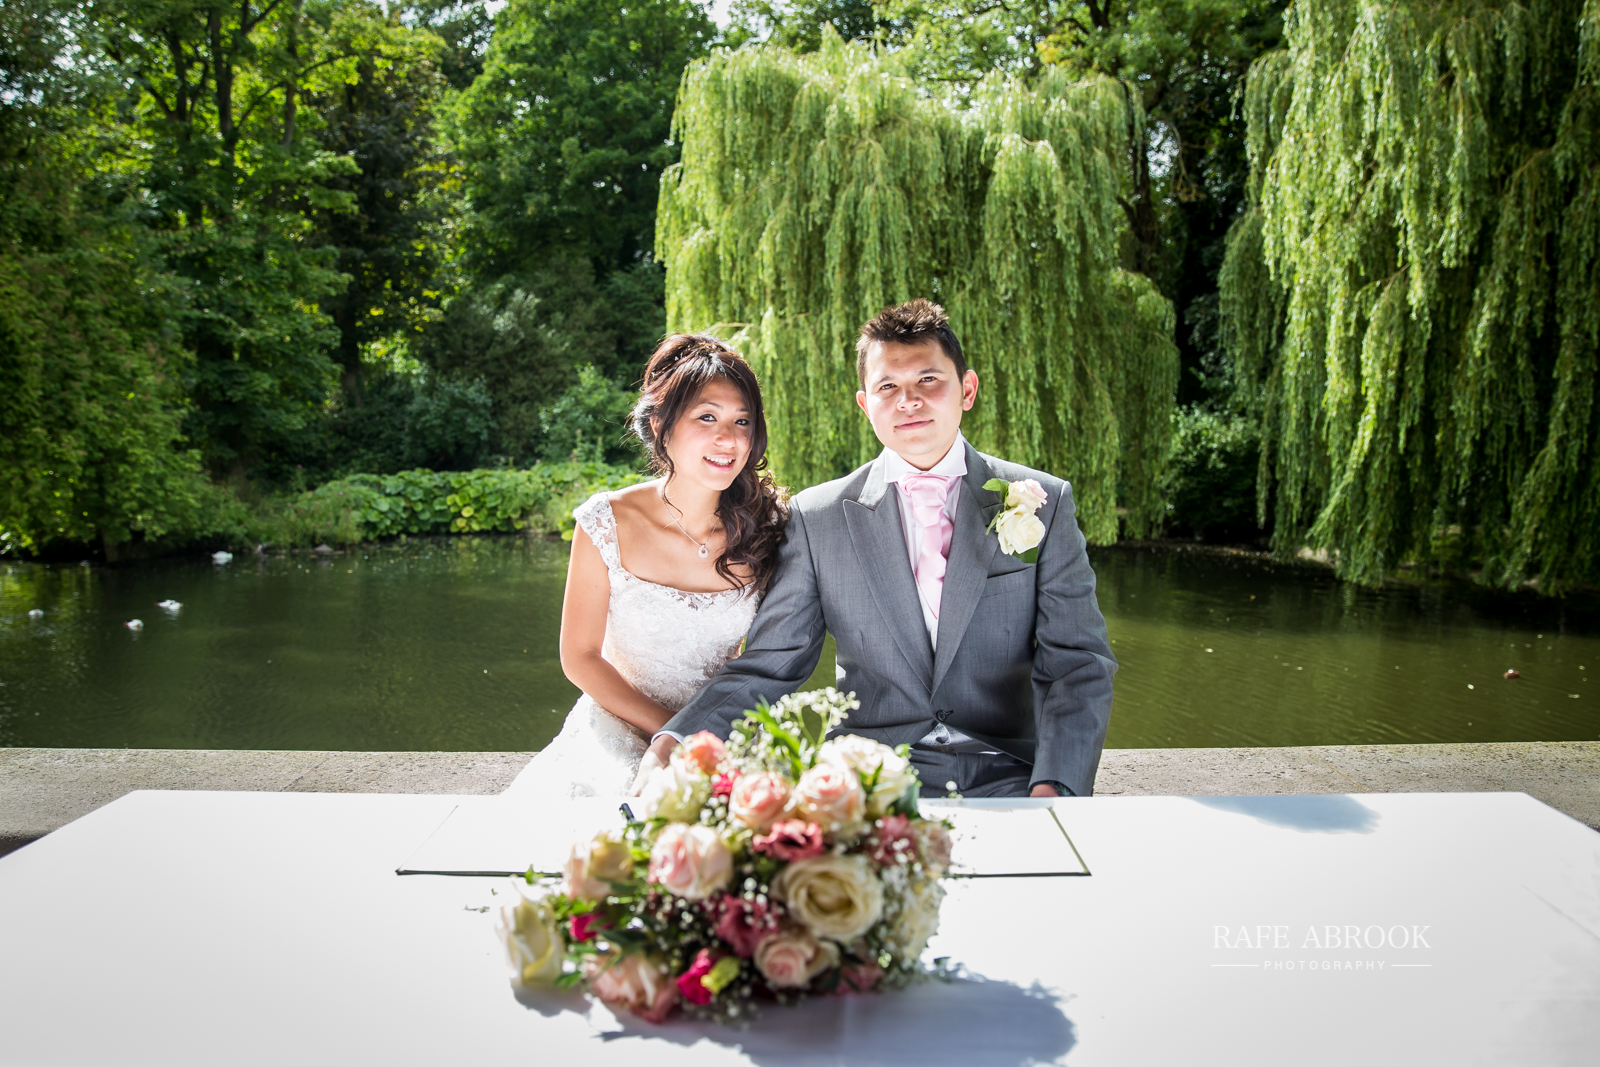 waddesdon manor the dairy aylesbury bucks wedding photographer hertfordshire-1212.jpg